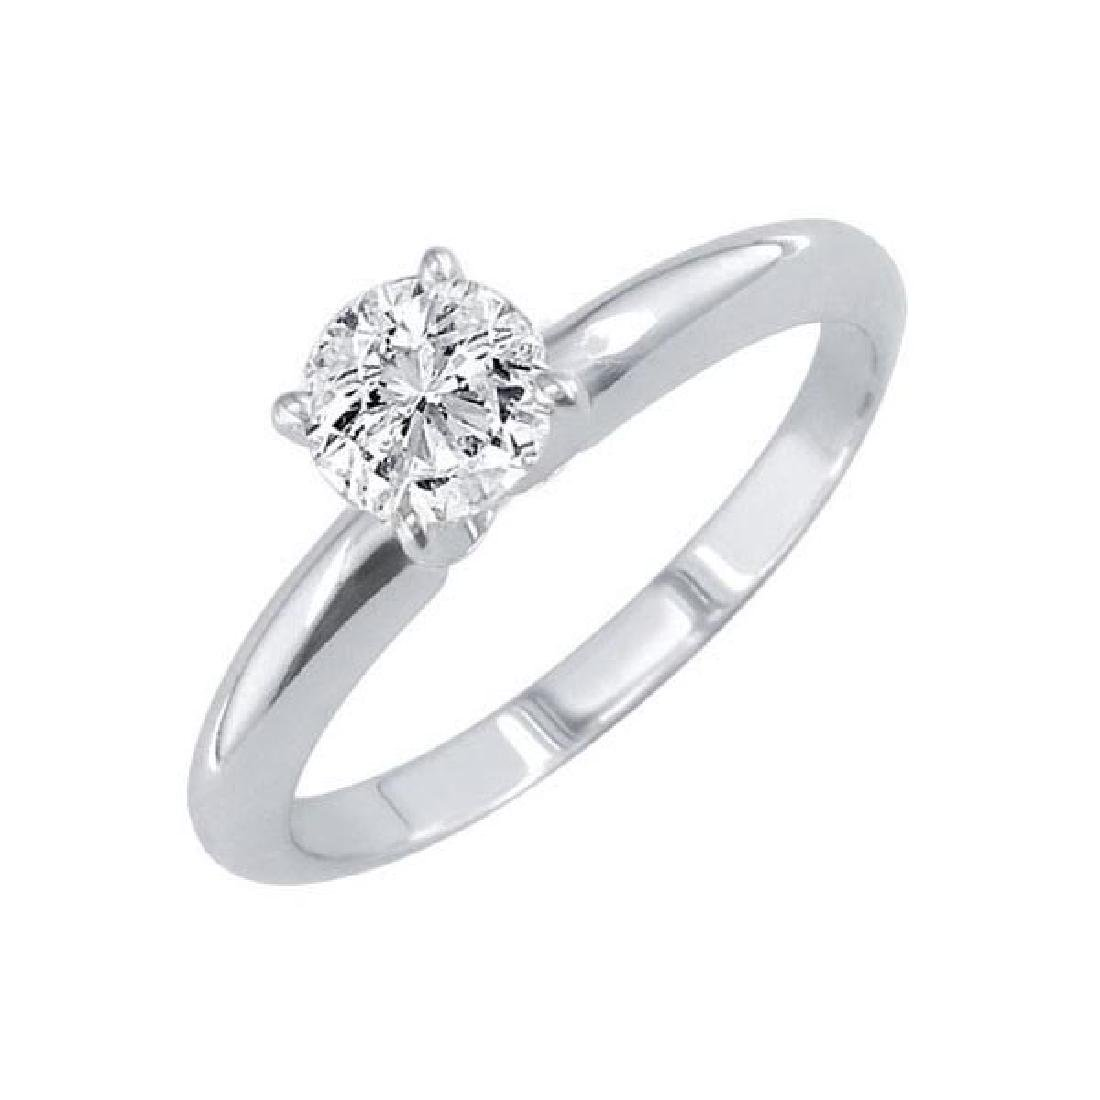 Certified 0.96 CTW Round Diamond Solitaire 14k Ring G/S